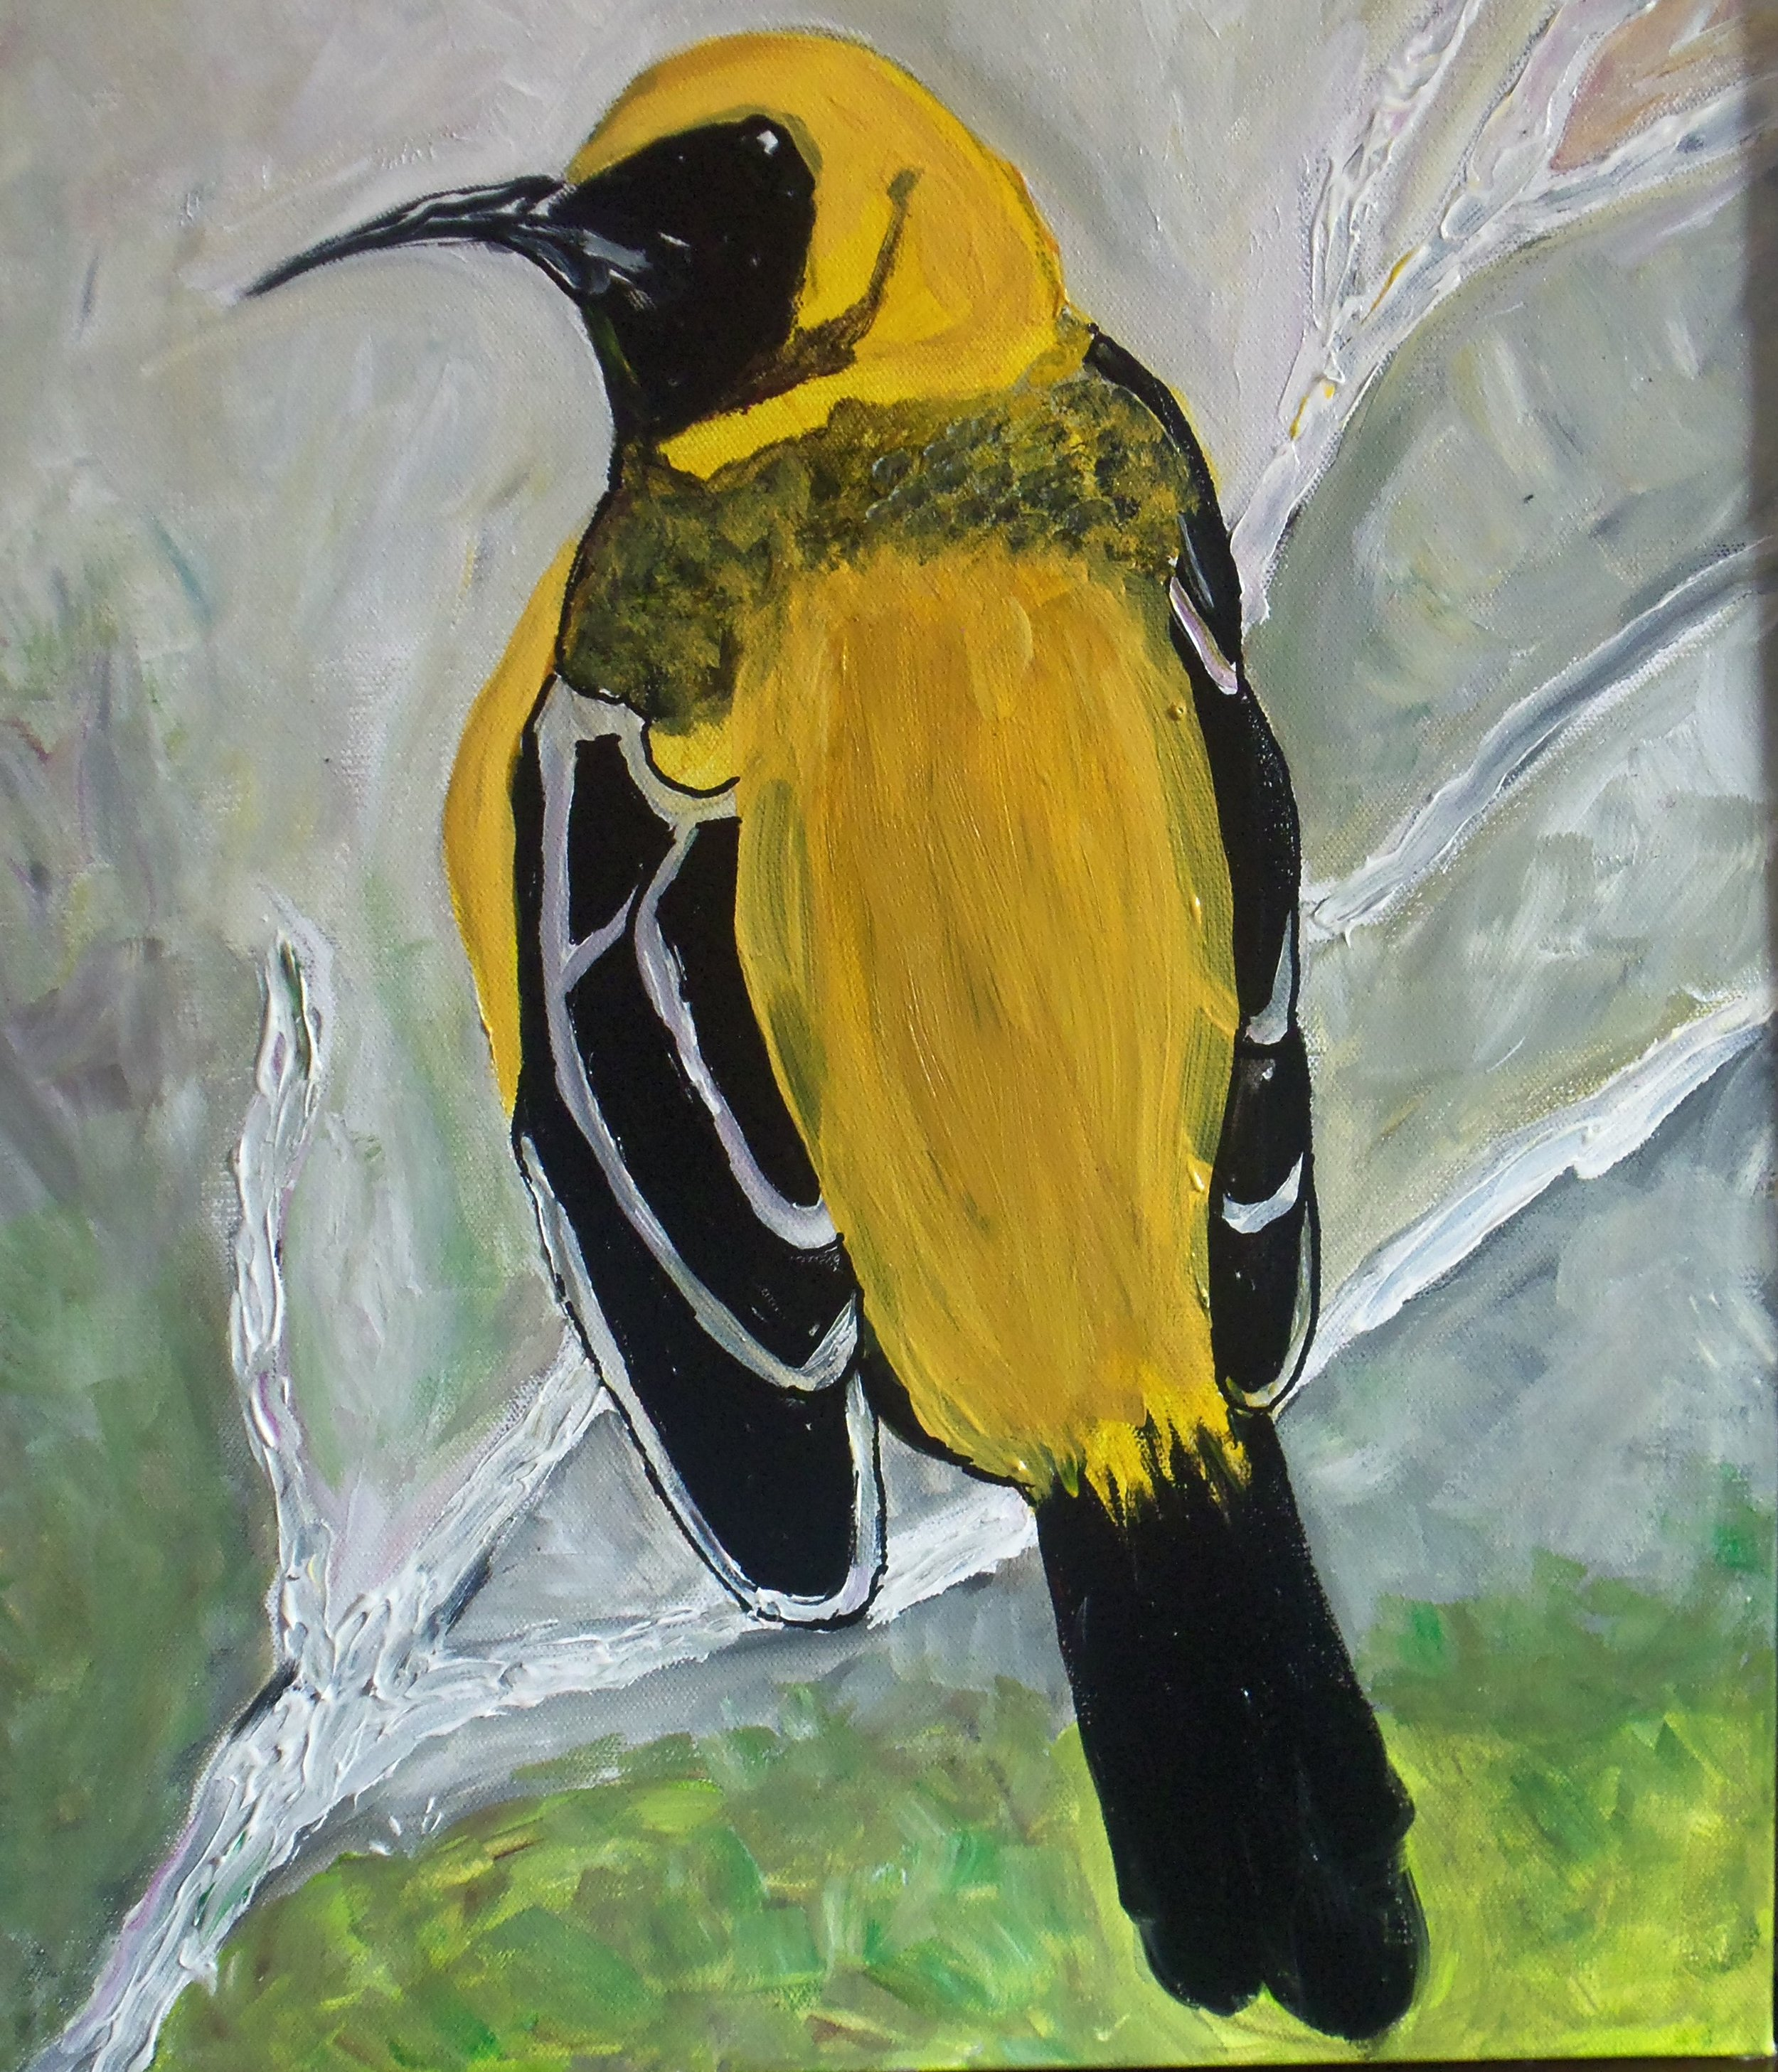 lynn wilson - Bird Yellow Black White on white branch of tree with green grey background .JPG